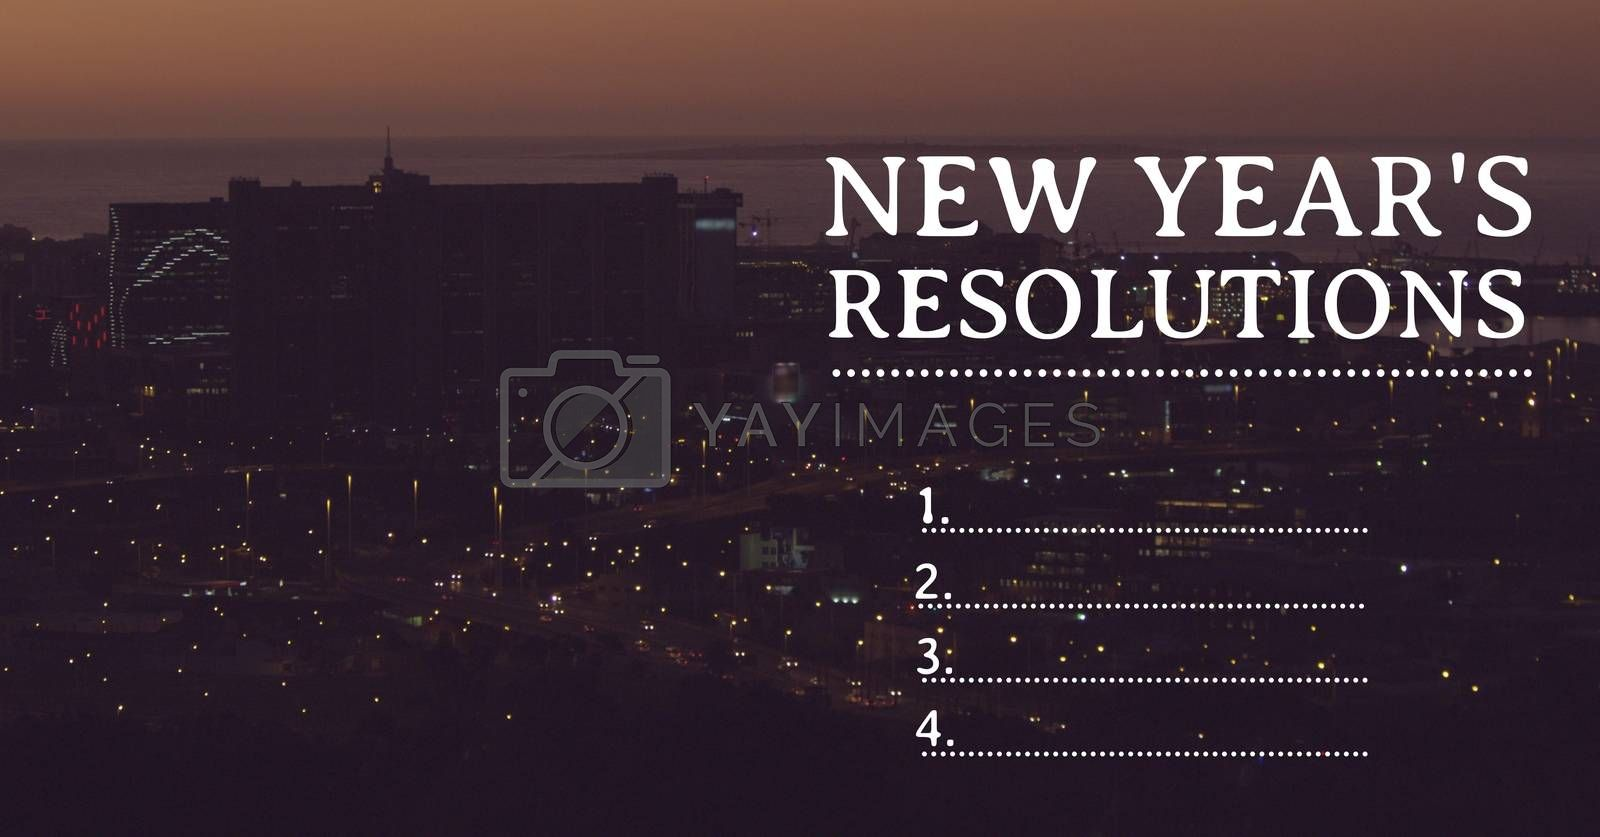 List of new year resolution goals against urban city in background